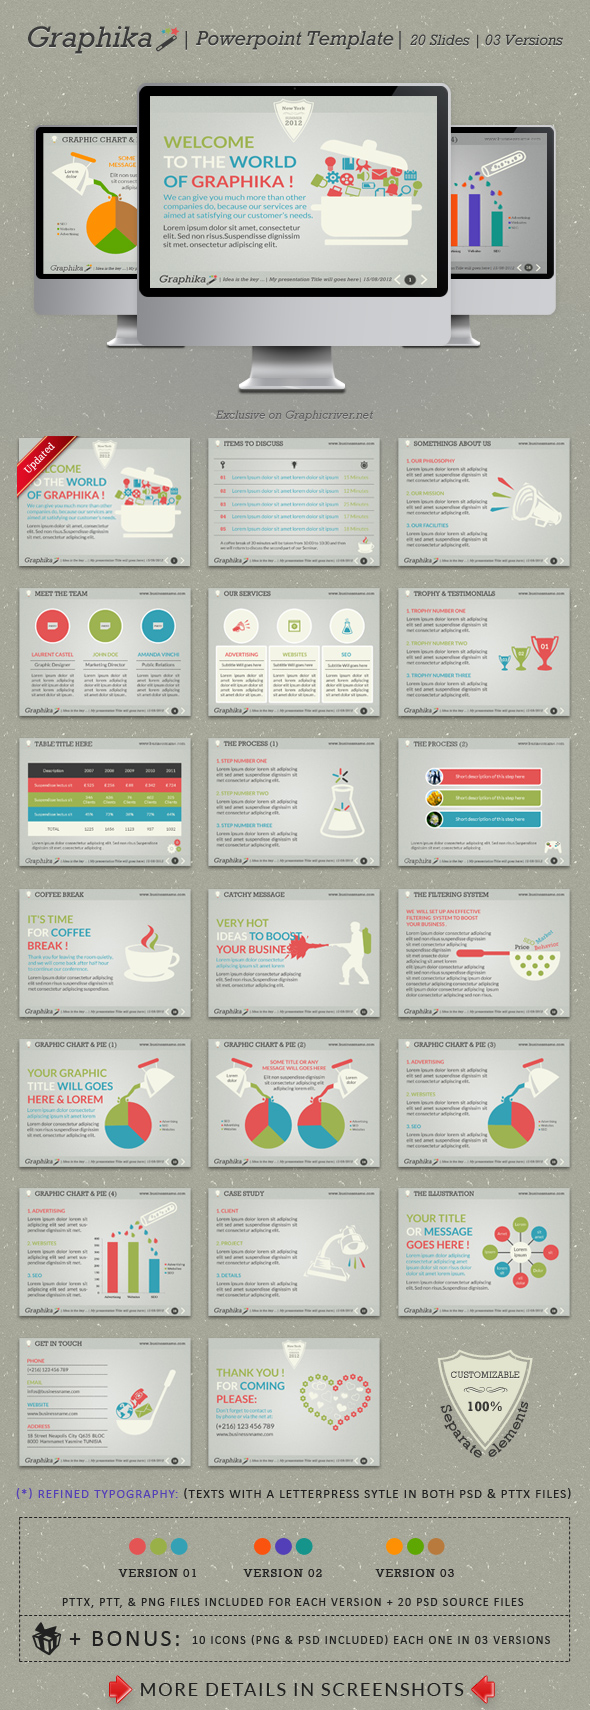 Graphika powerpoint template by kh2838 on deviantart graphika powerpoint template by kh2838 graphika powerpoint template by kh2838 toneelgroepblik Image collections